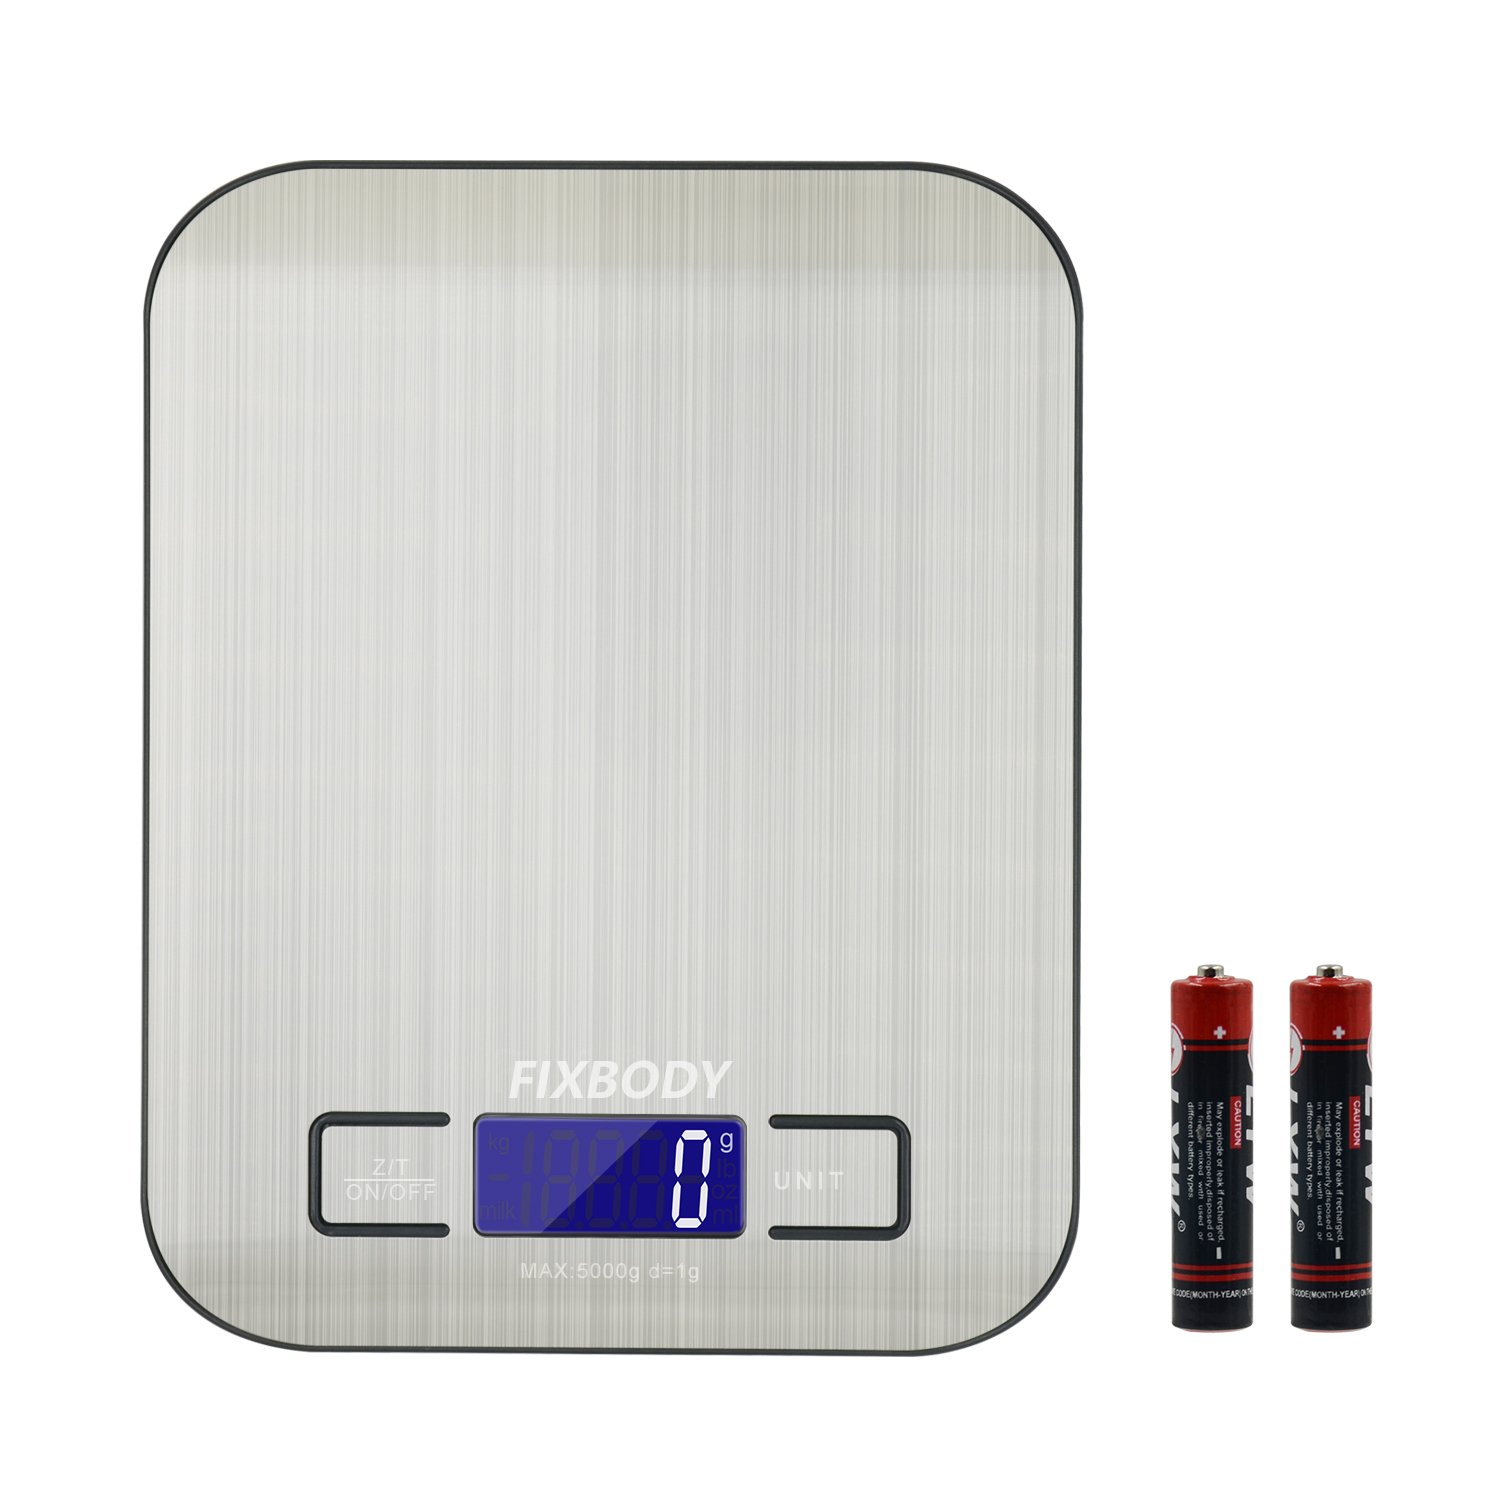 FIXBODY Digital Kitchen Scale Multifunction Food Scale, Stainless Steel, Silver, 5000g/1g (Batteries Included)